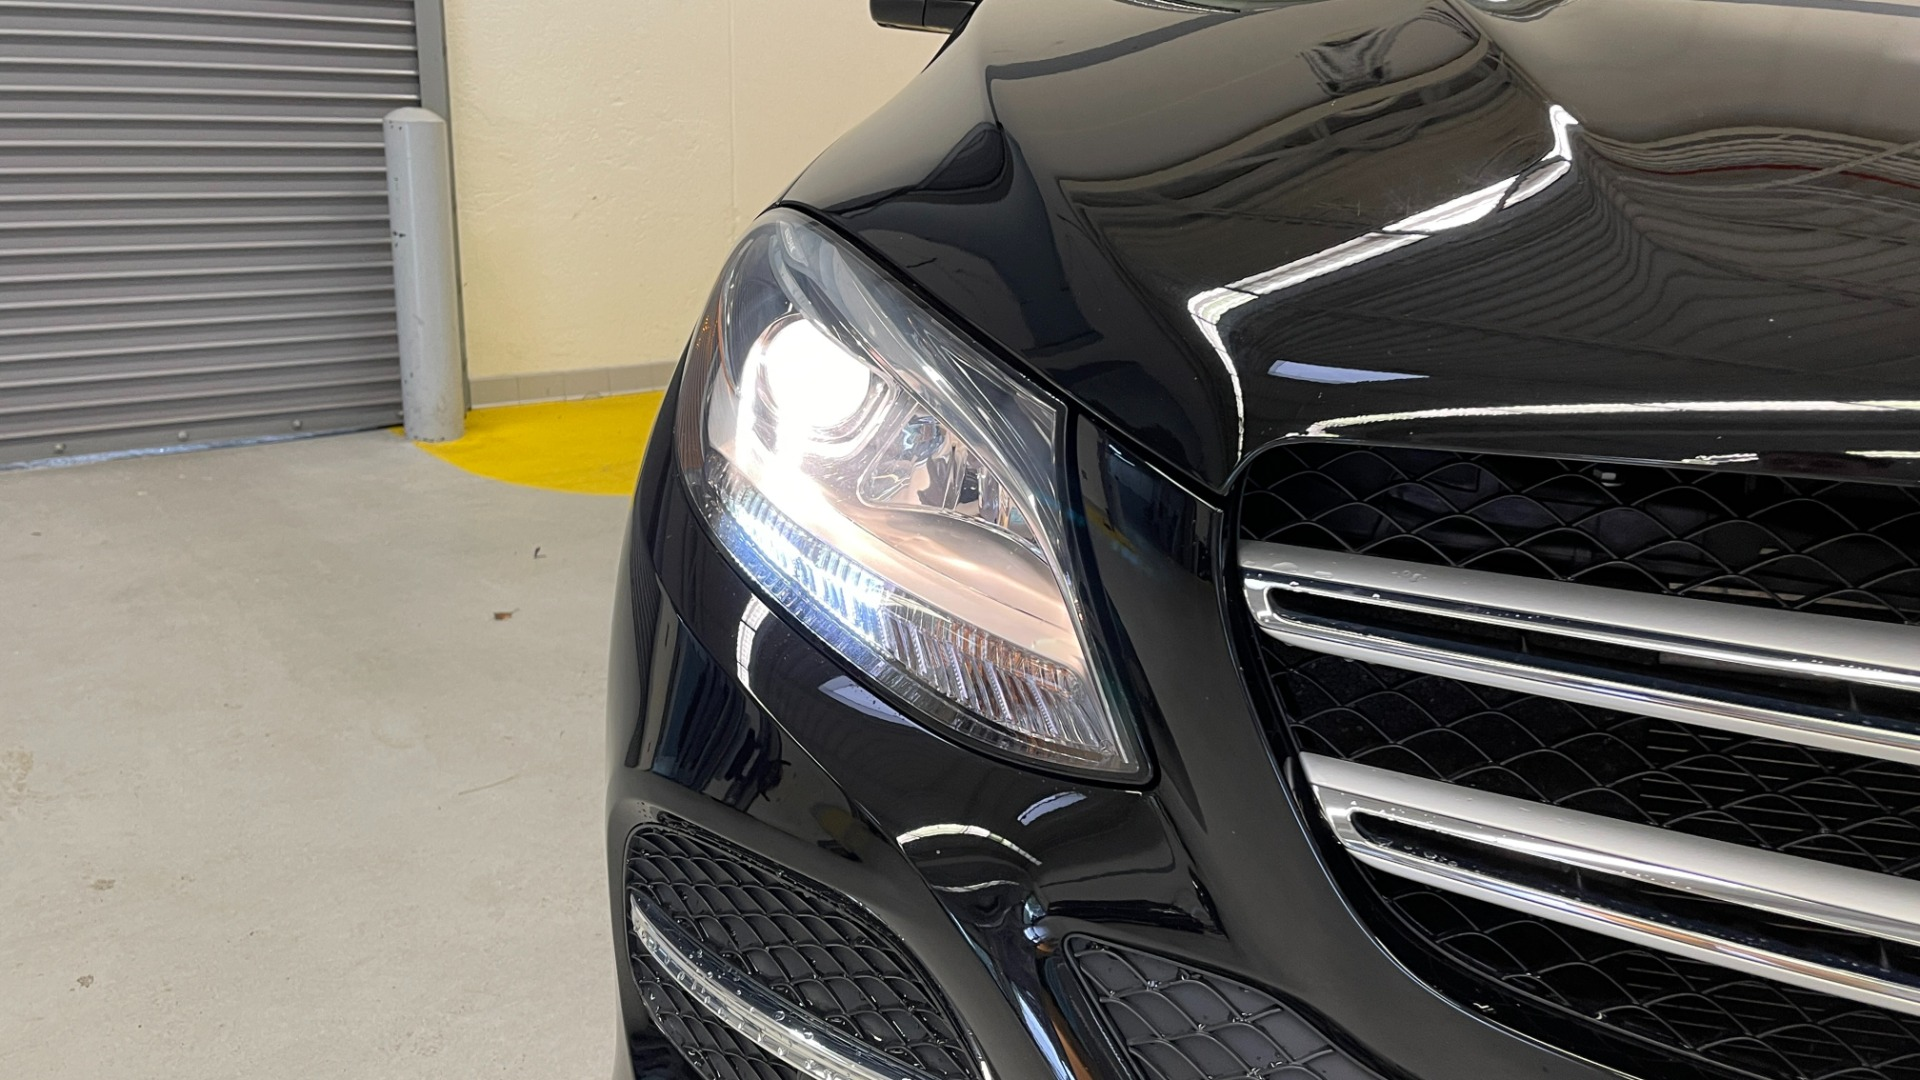 Used 2018 Mercedes-Benz GLE 350 4MATIC PREMIUM / NAV / PARK PILOT / BSA / H/K SND / SURROUND VIEW for sale $40,995 at Formula Imports in Charlotte NC 28227 20